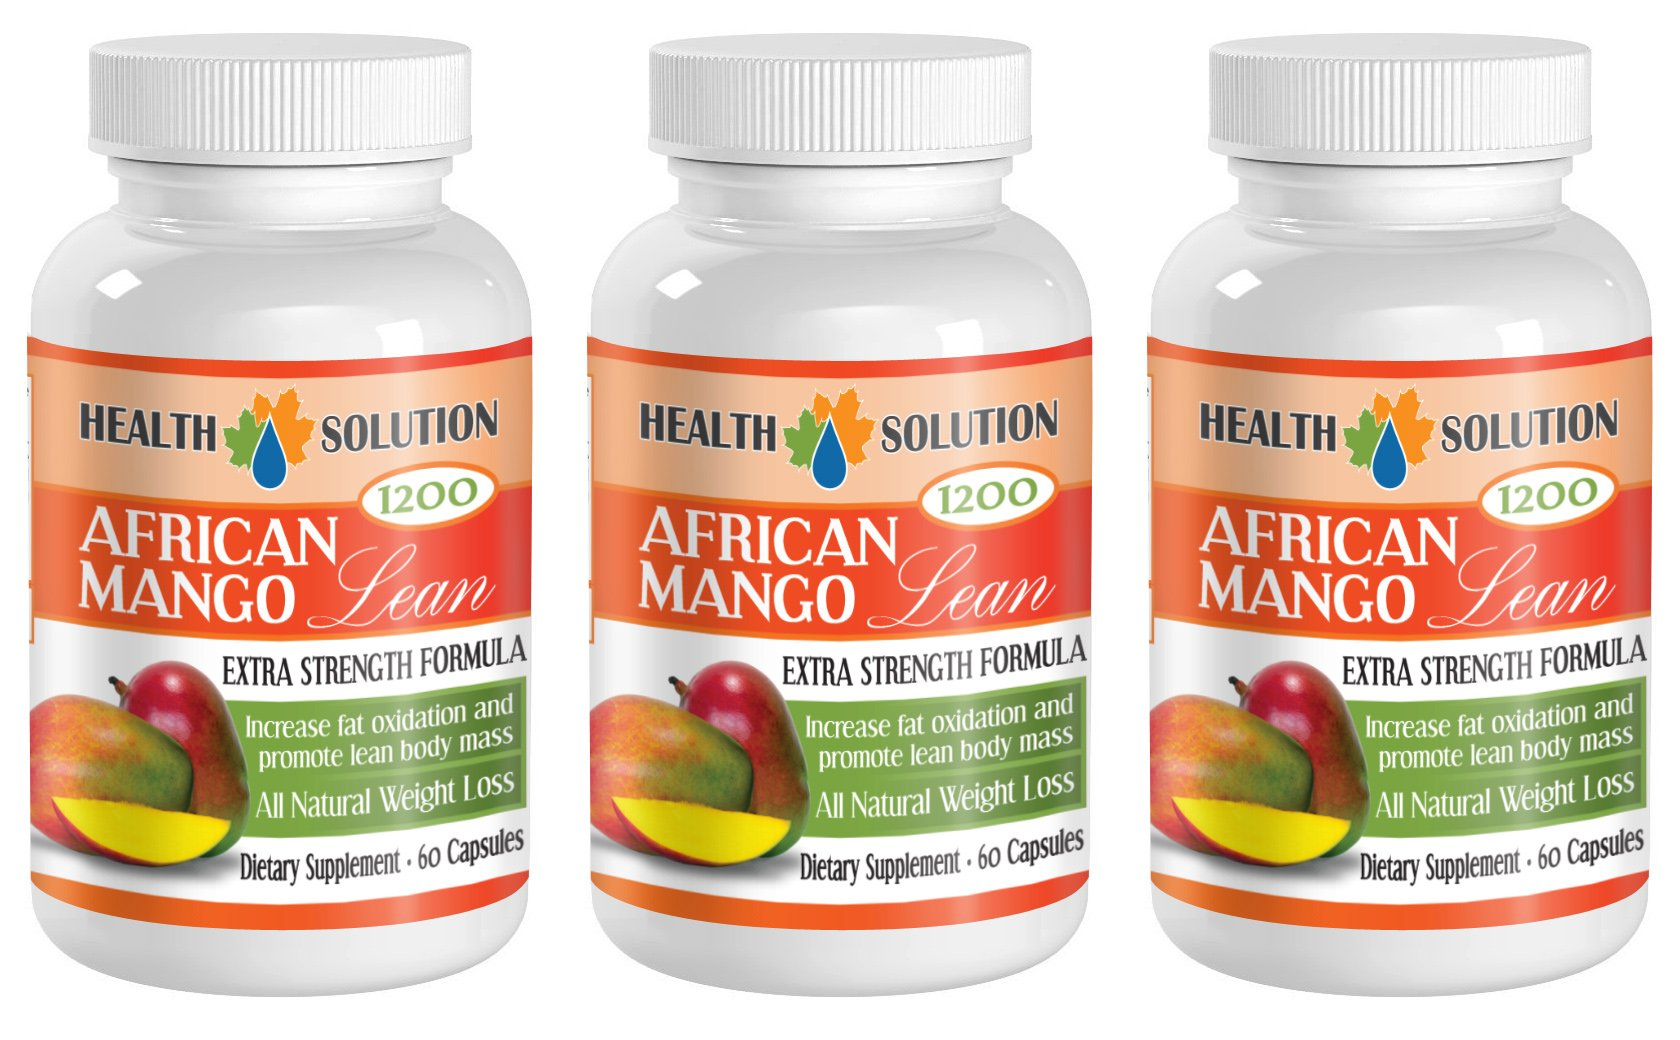 Metabolism booster for weight loss for women - AFRICAN MANGO EXTRACT (1200Mg) - Mango africano diet pills - 3 Bottles 180 Capsules